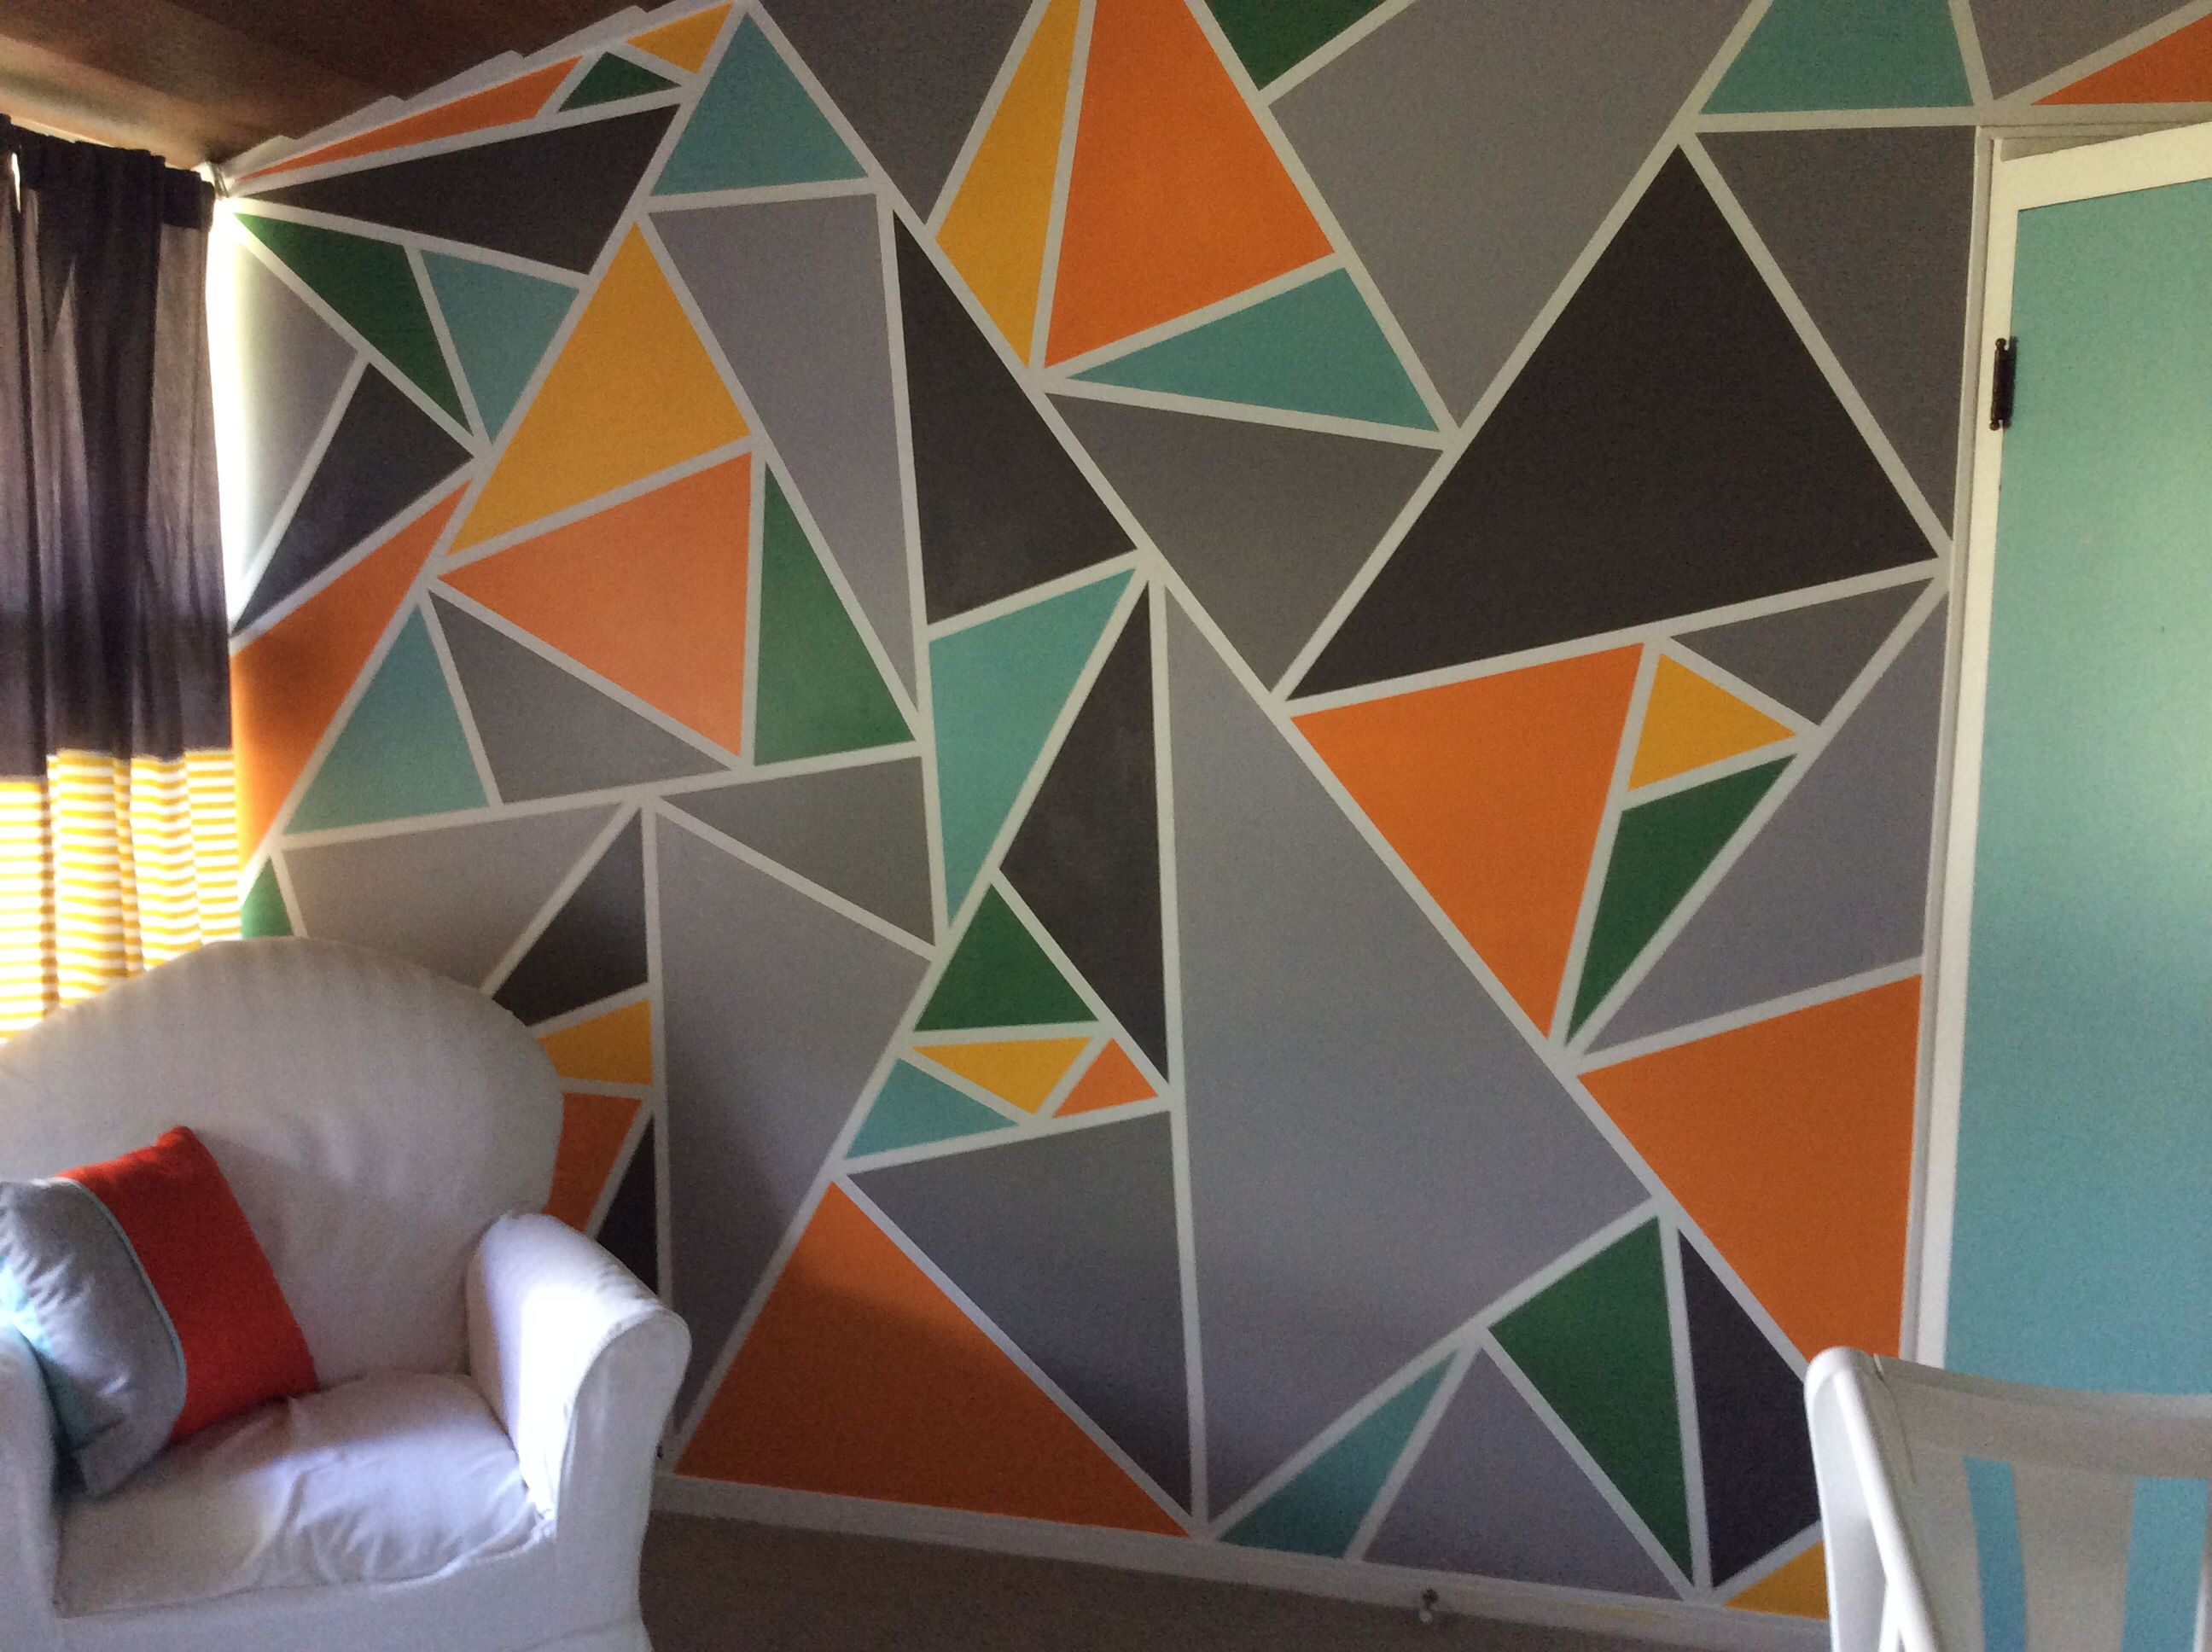 used 7 colors | creative wall painting, wall design